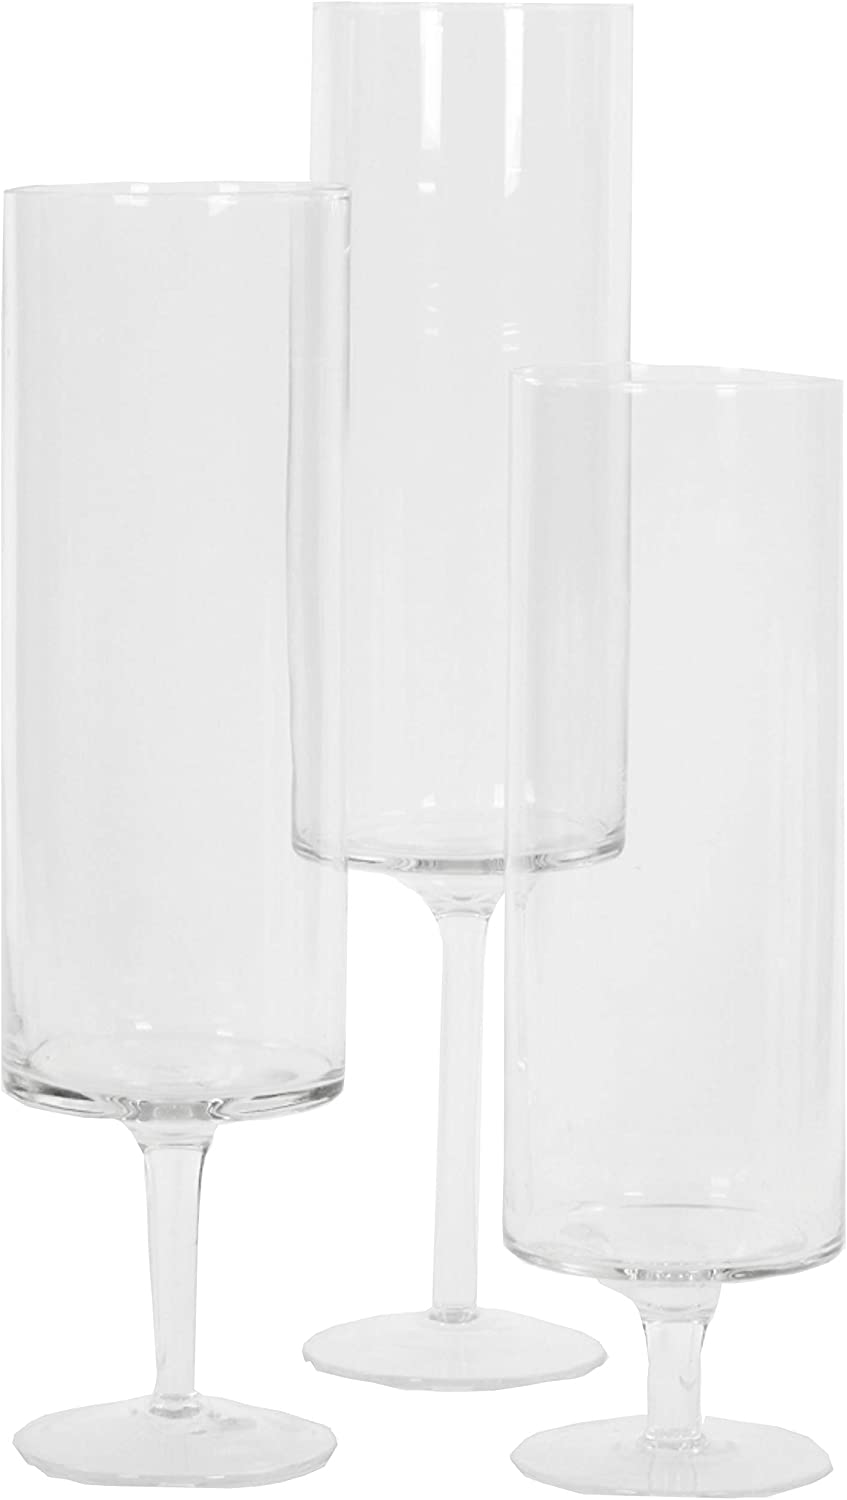 Koyal Wholesale Pillar Candle Hurricane Pedestal Holders, Tall Glass Pedestal Candle Holders Centerpiece, Wedding Glass Stem Hurricanes Set of 3 (Clear, 3.7 x 11.8, 13.7, 15.7)